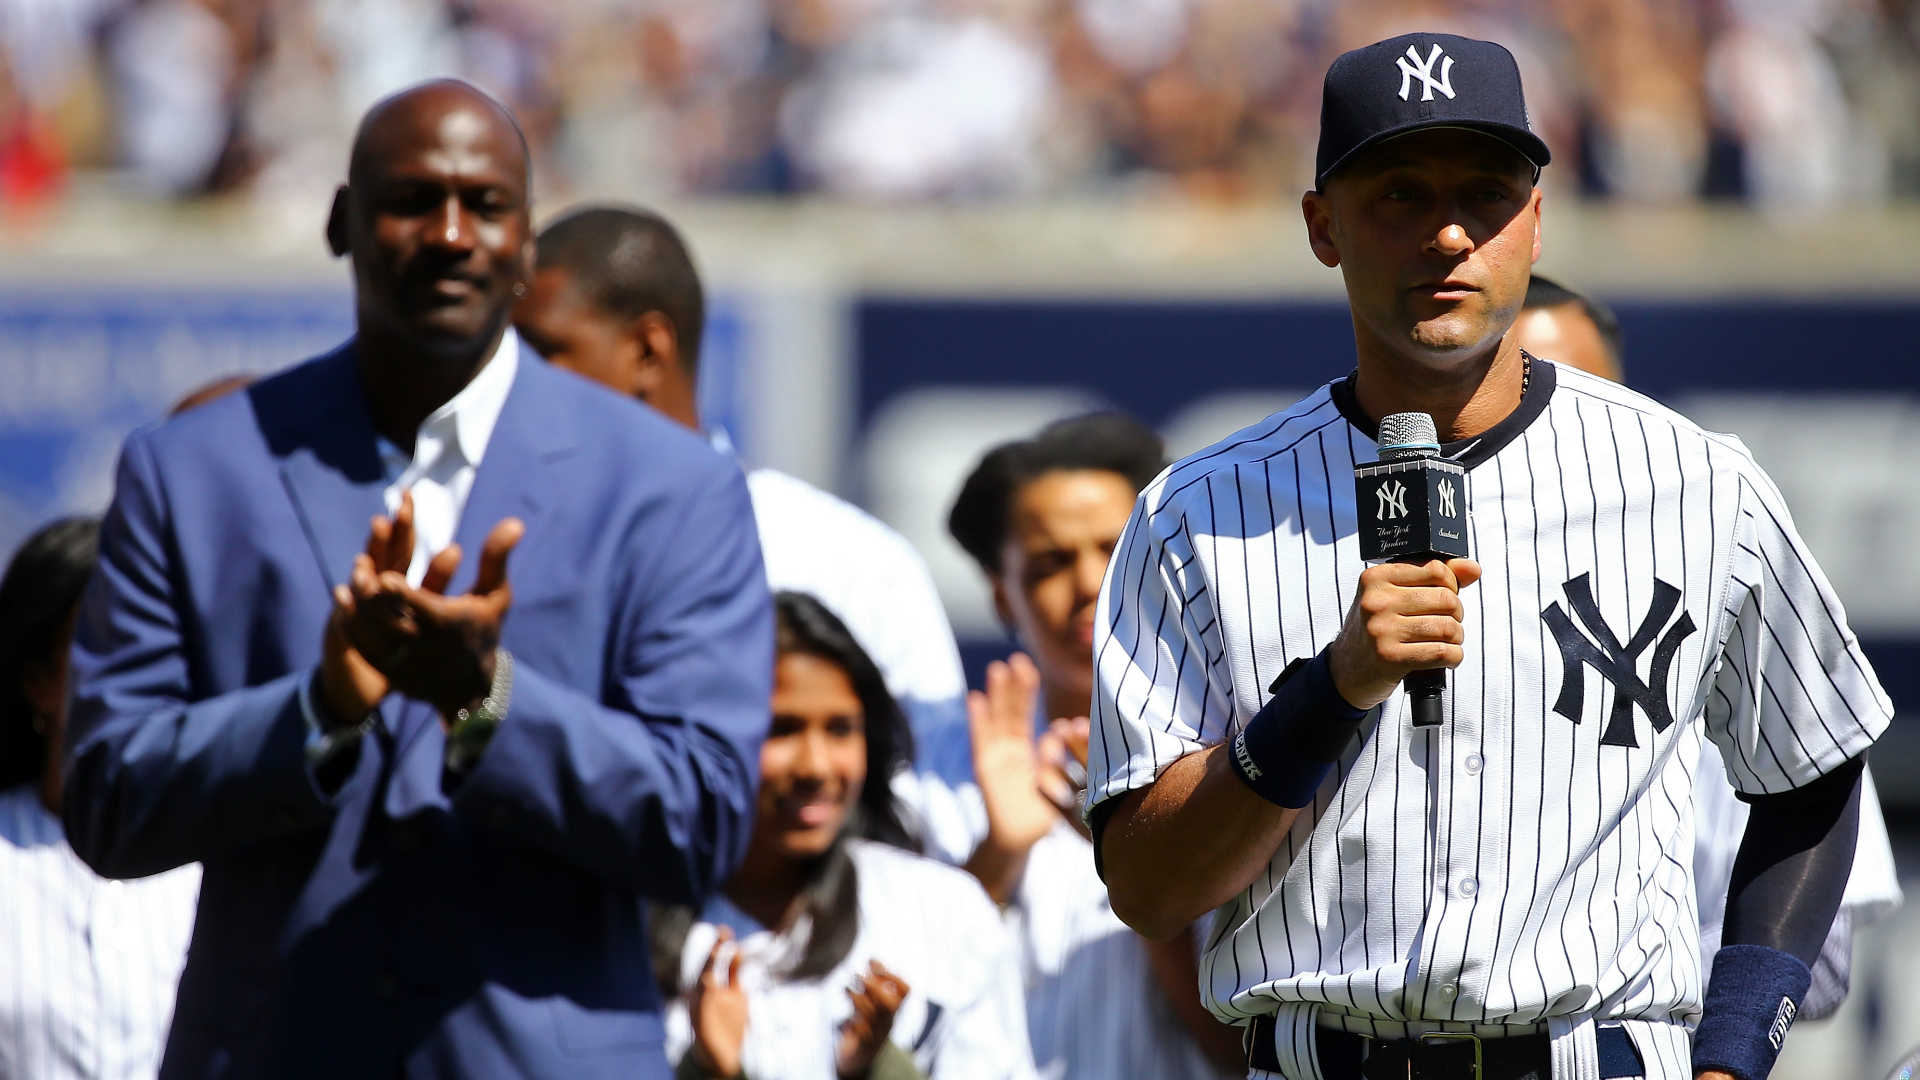 Derek Jeter and Michael Jordan are close to purchasing the Miami Marlins